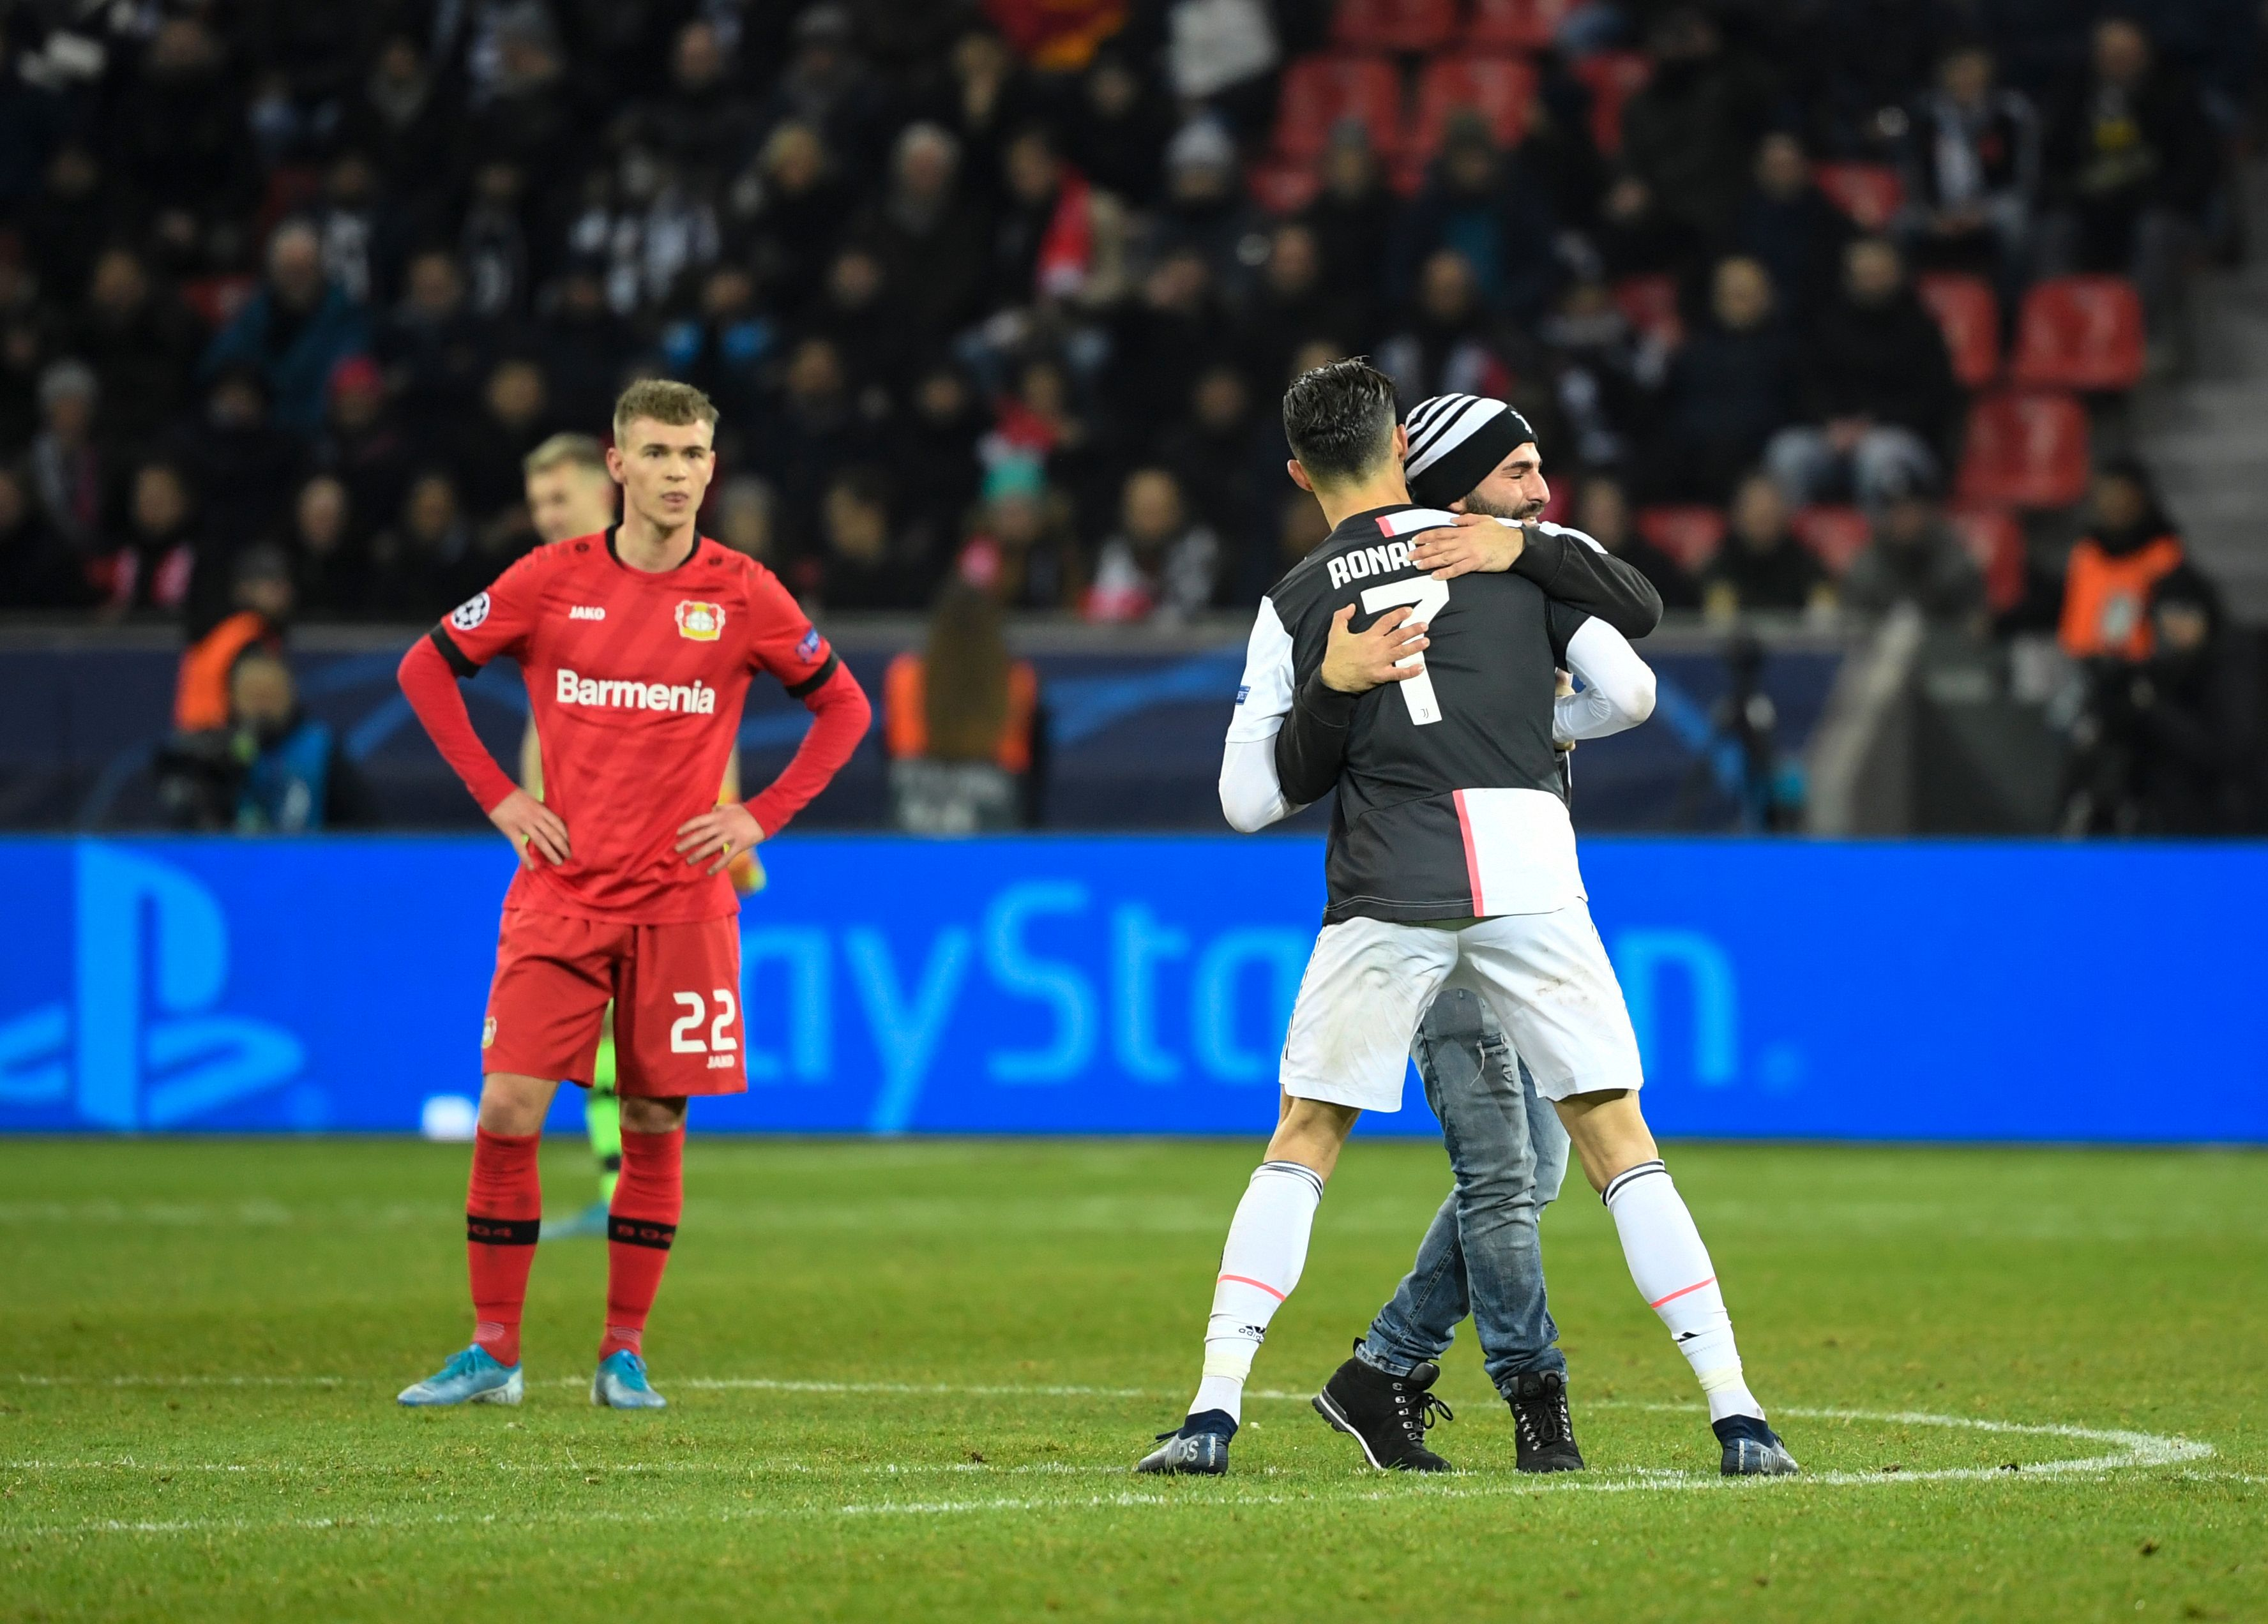 A pitch invader in Leverkusen enters the pitch to hug Cristiano Ronaldo.